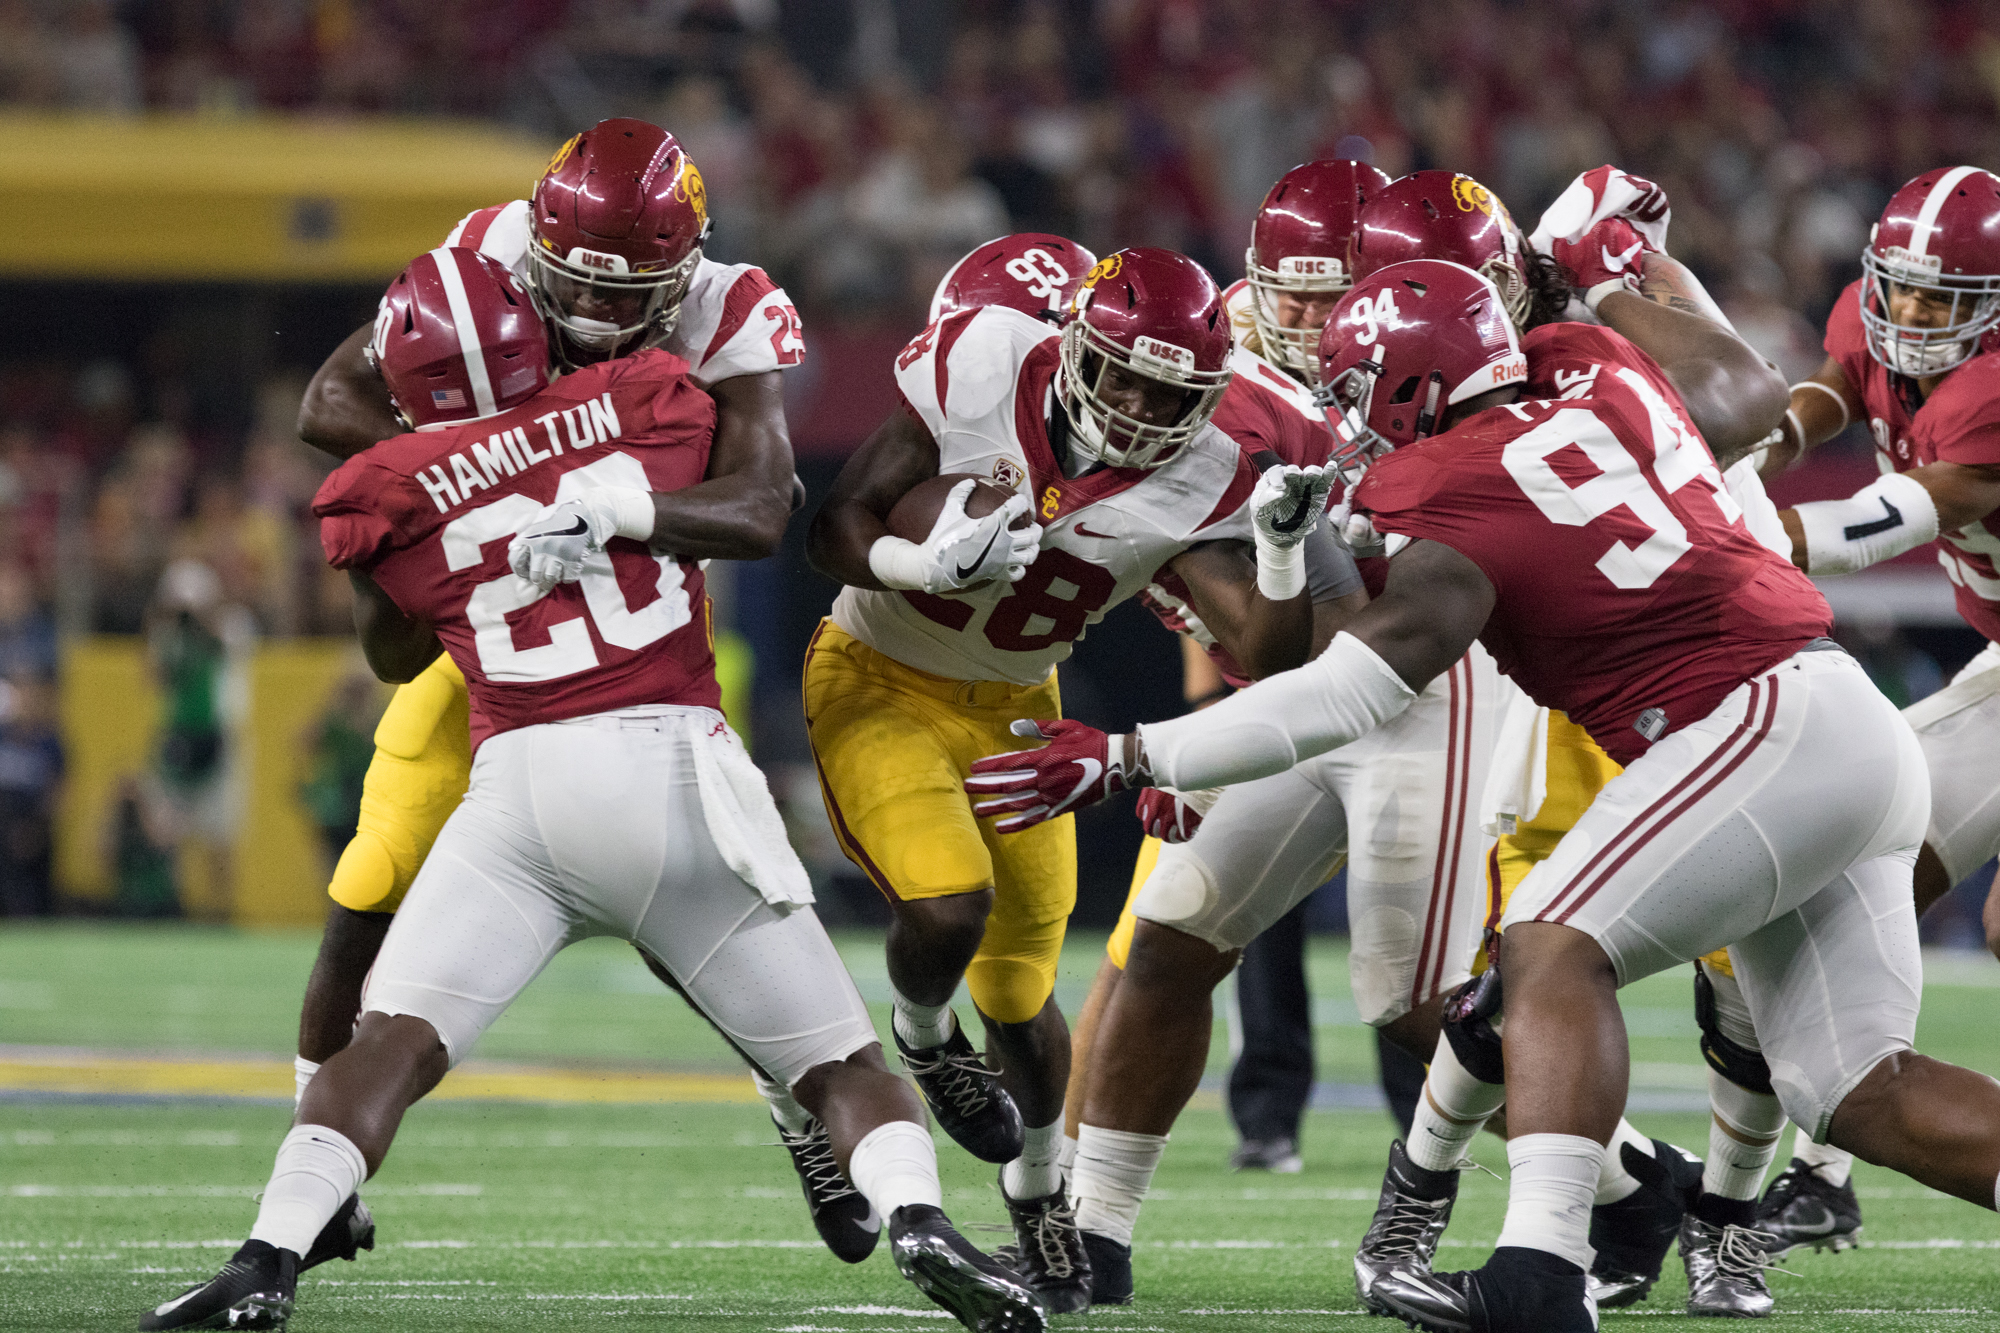 Sophomore tailback Aca'Cedric Ware gets wrapped up by the Alabama defense. Ware earned 22 yards on six carries.